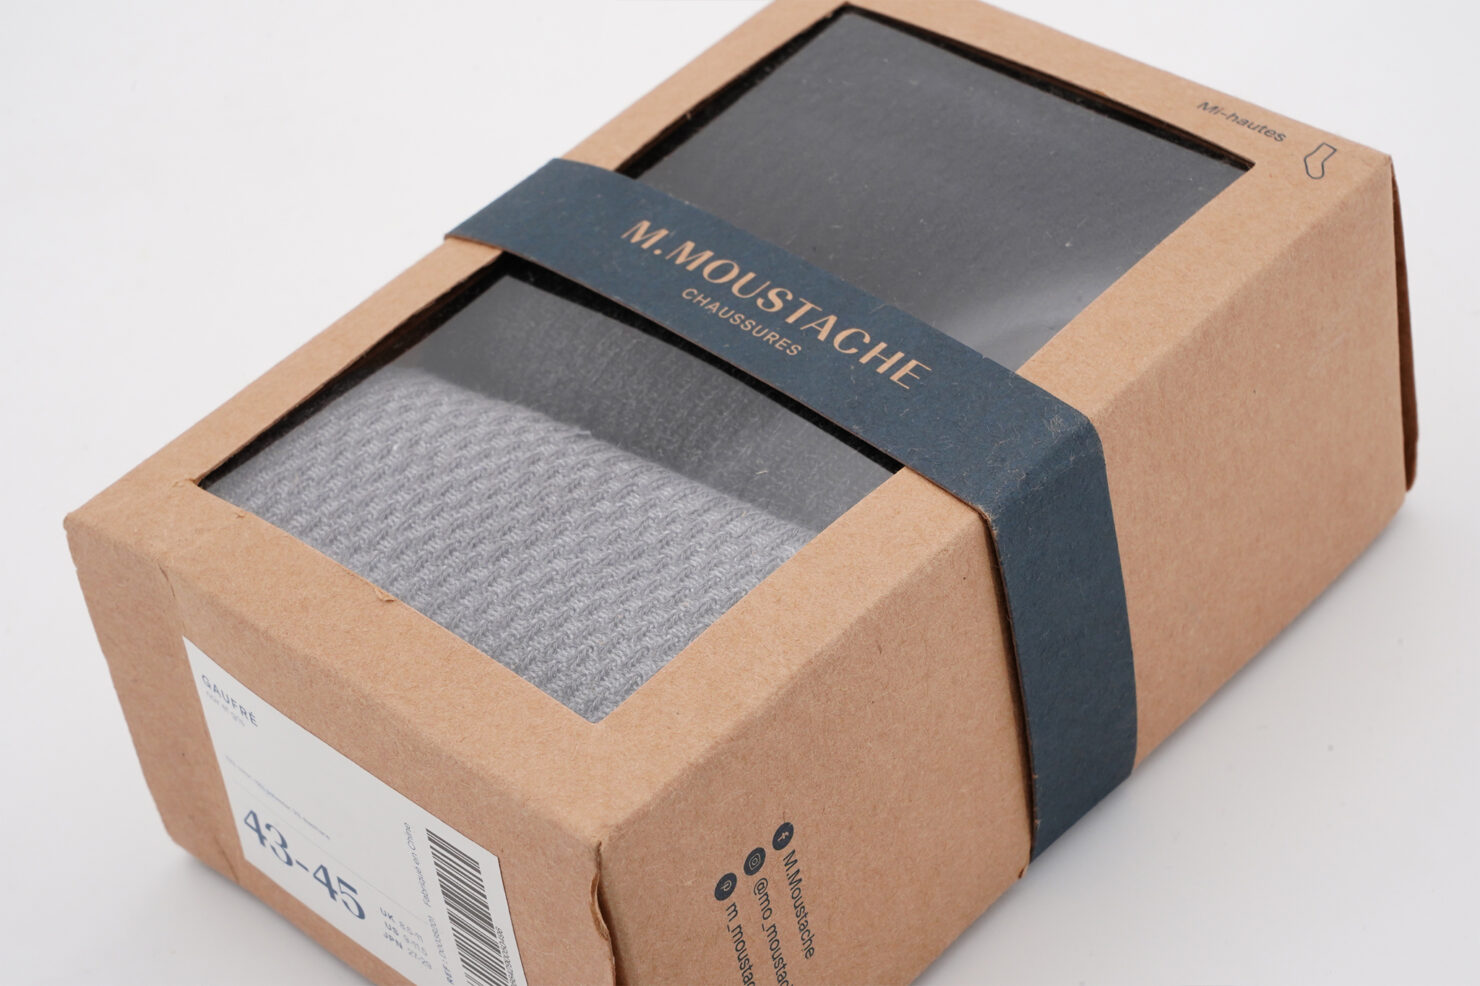 PACK OF 2 SOCKS - LE PETIT FRANCAISE, GREY AND BLUE PACK - M. MOUSTACHE